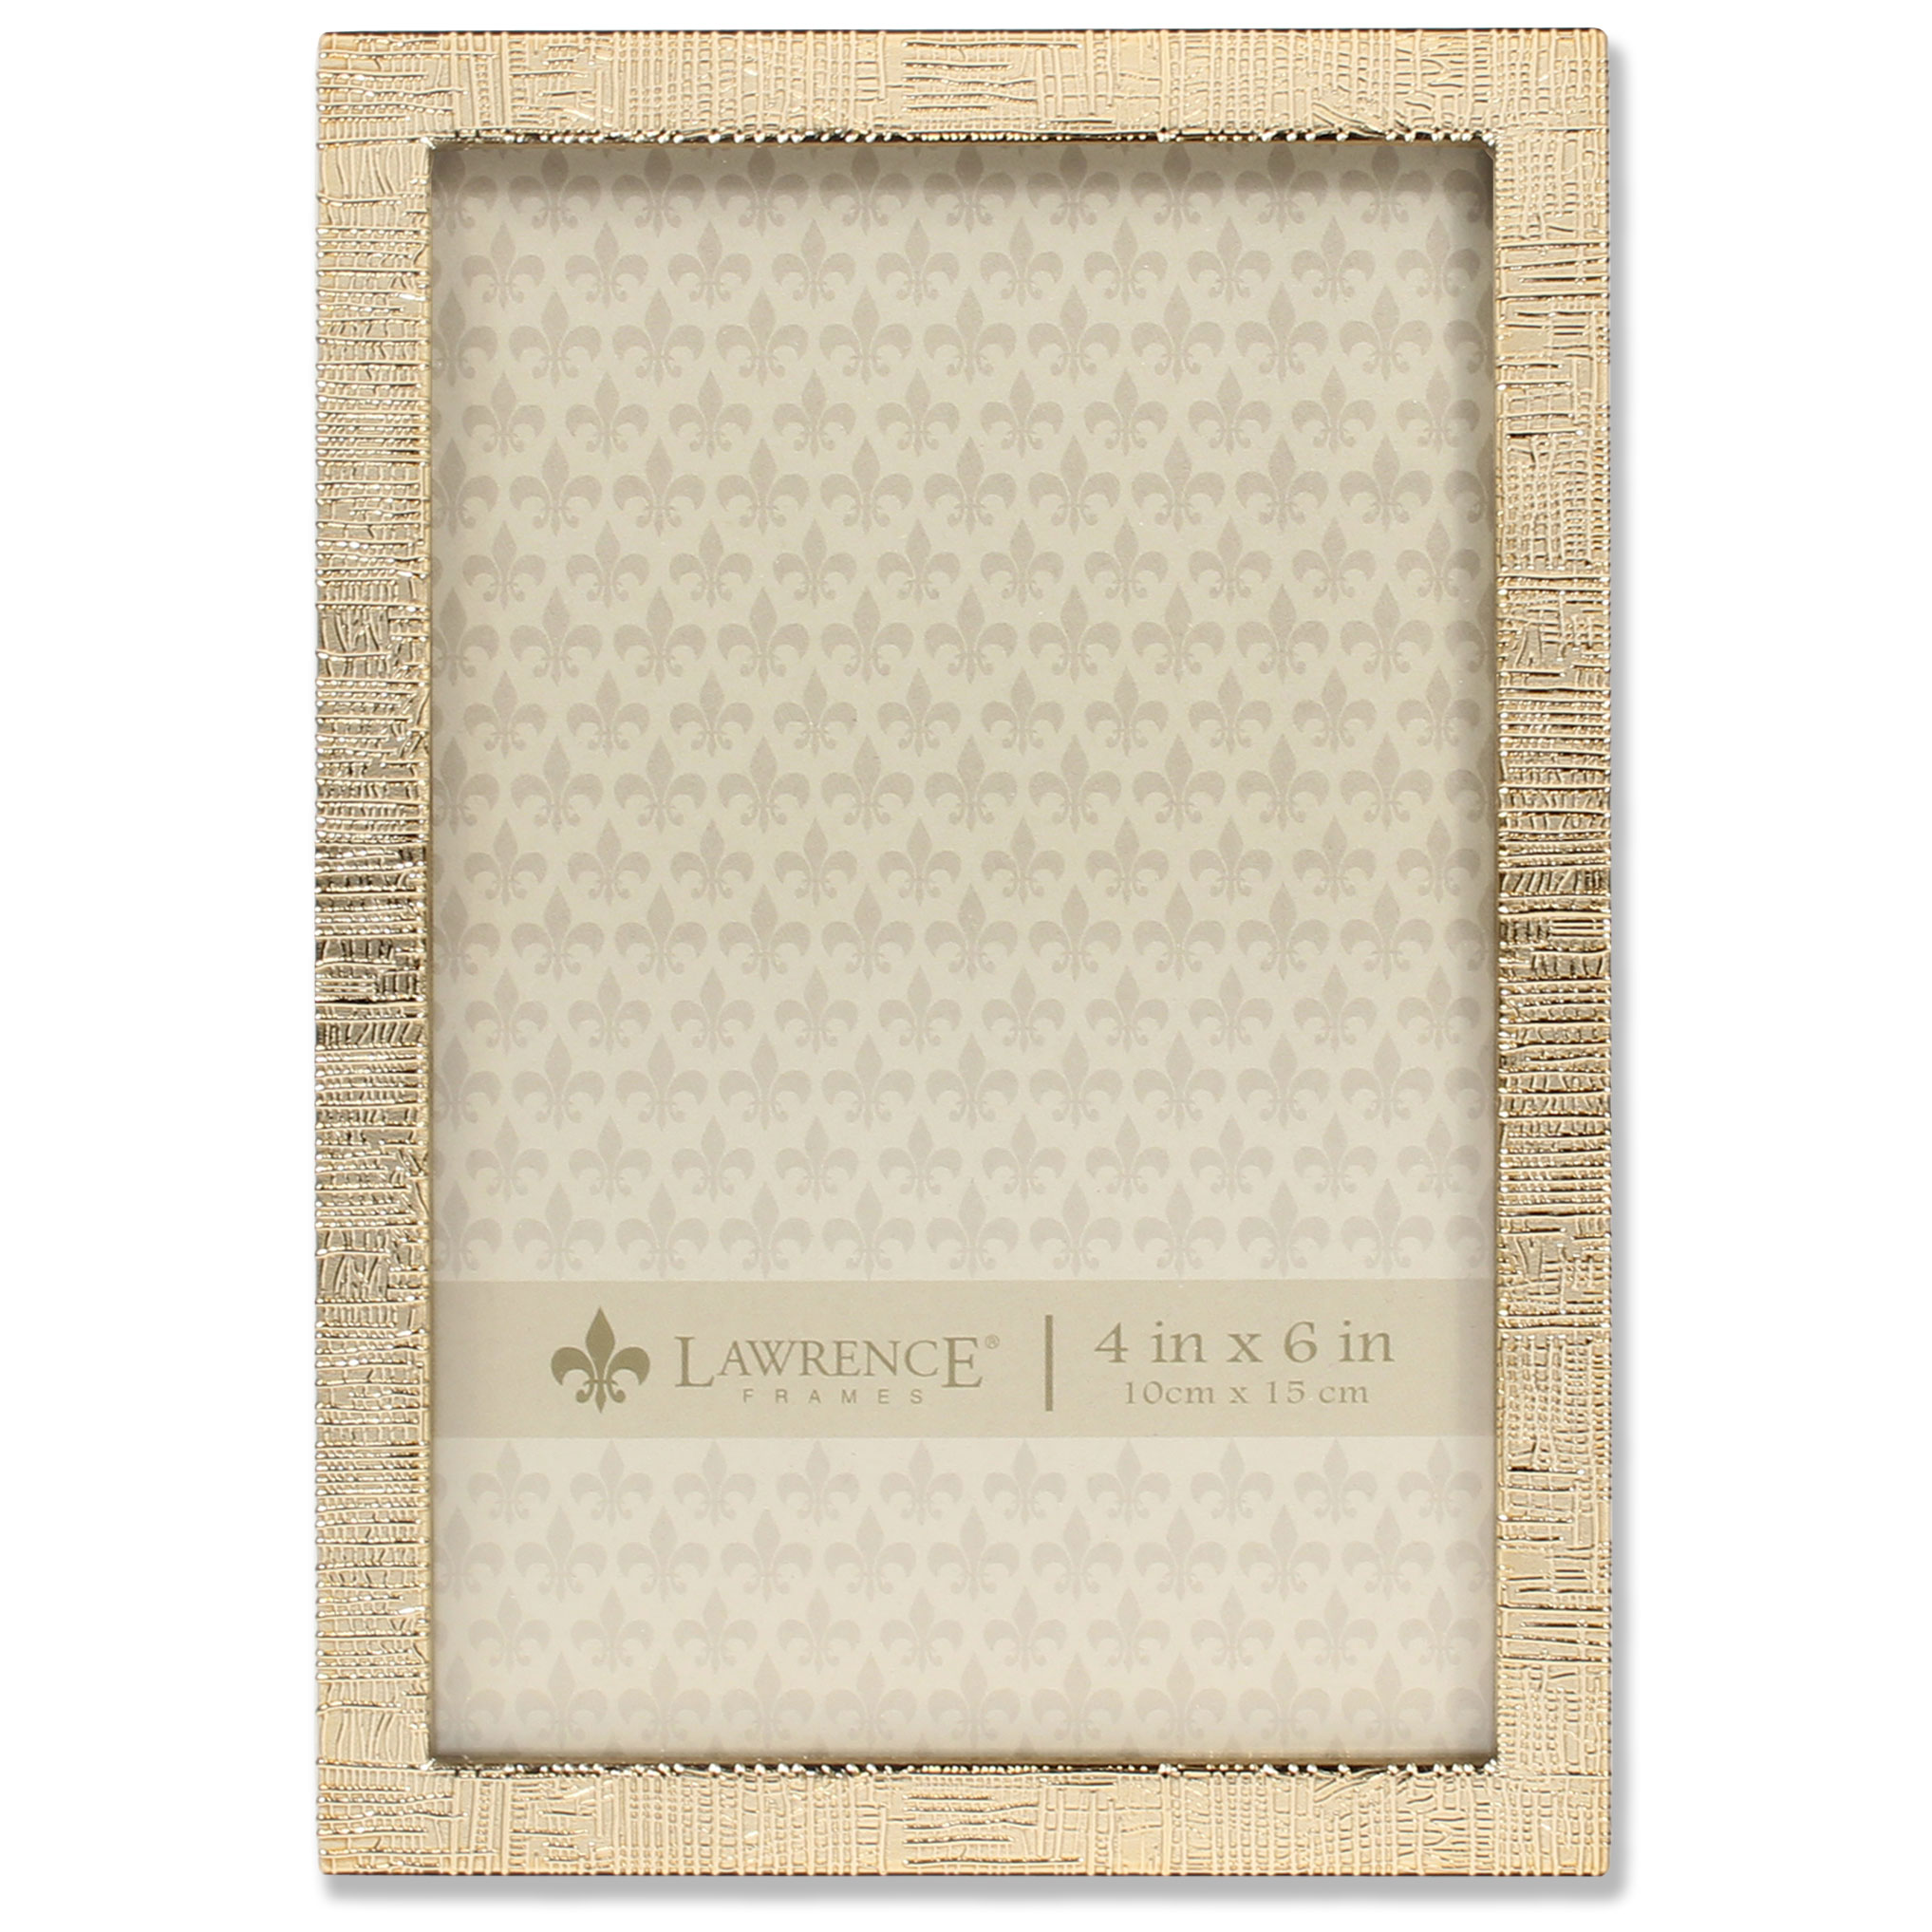 4x6 Gold Metal Picture Frame with Linen Pattern   PhotoFrames.net